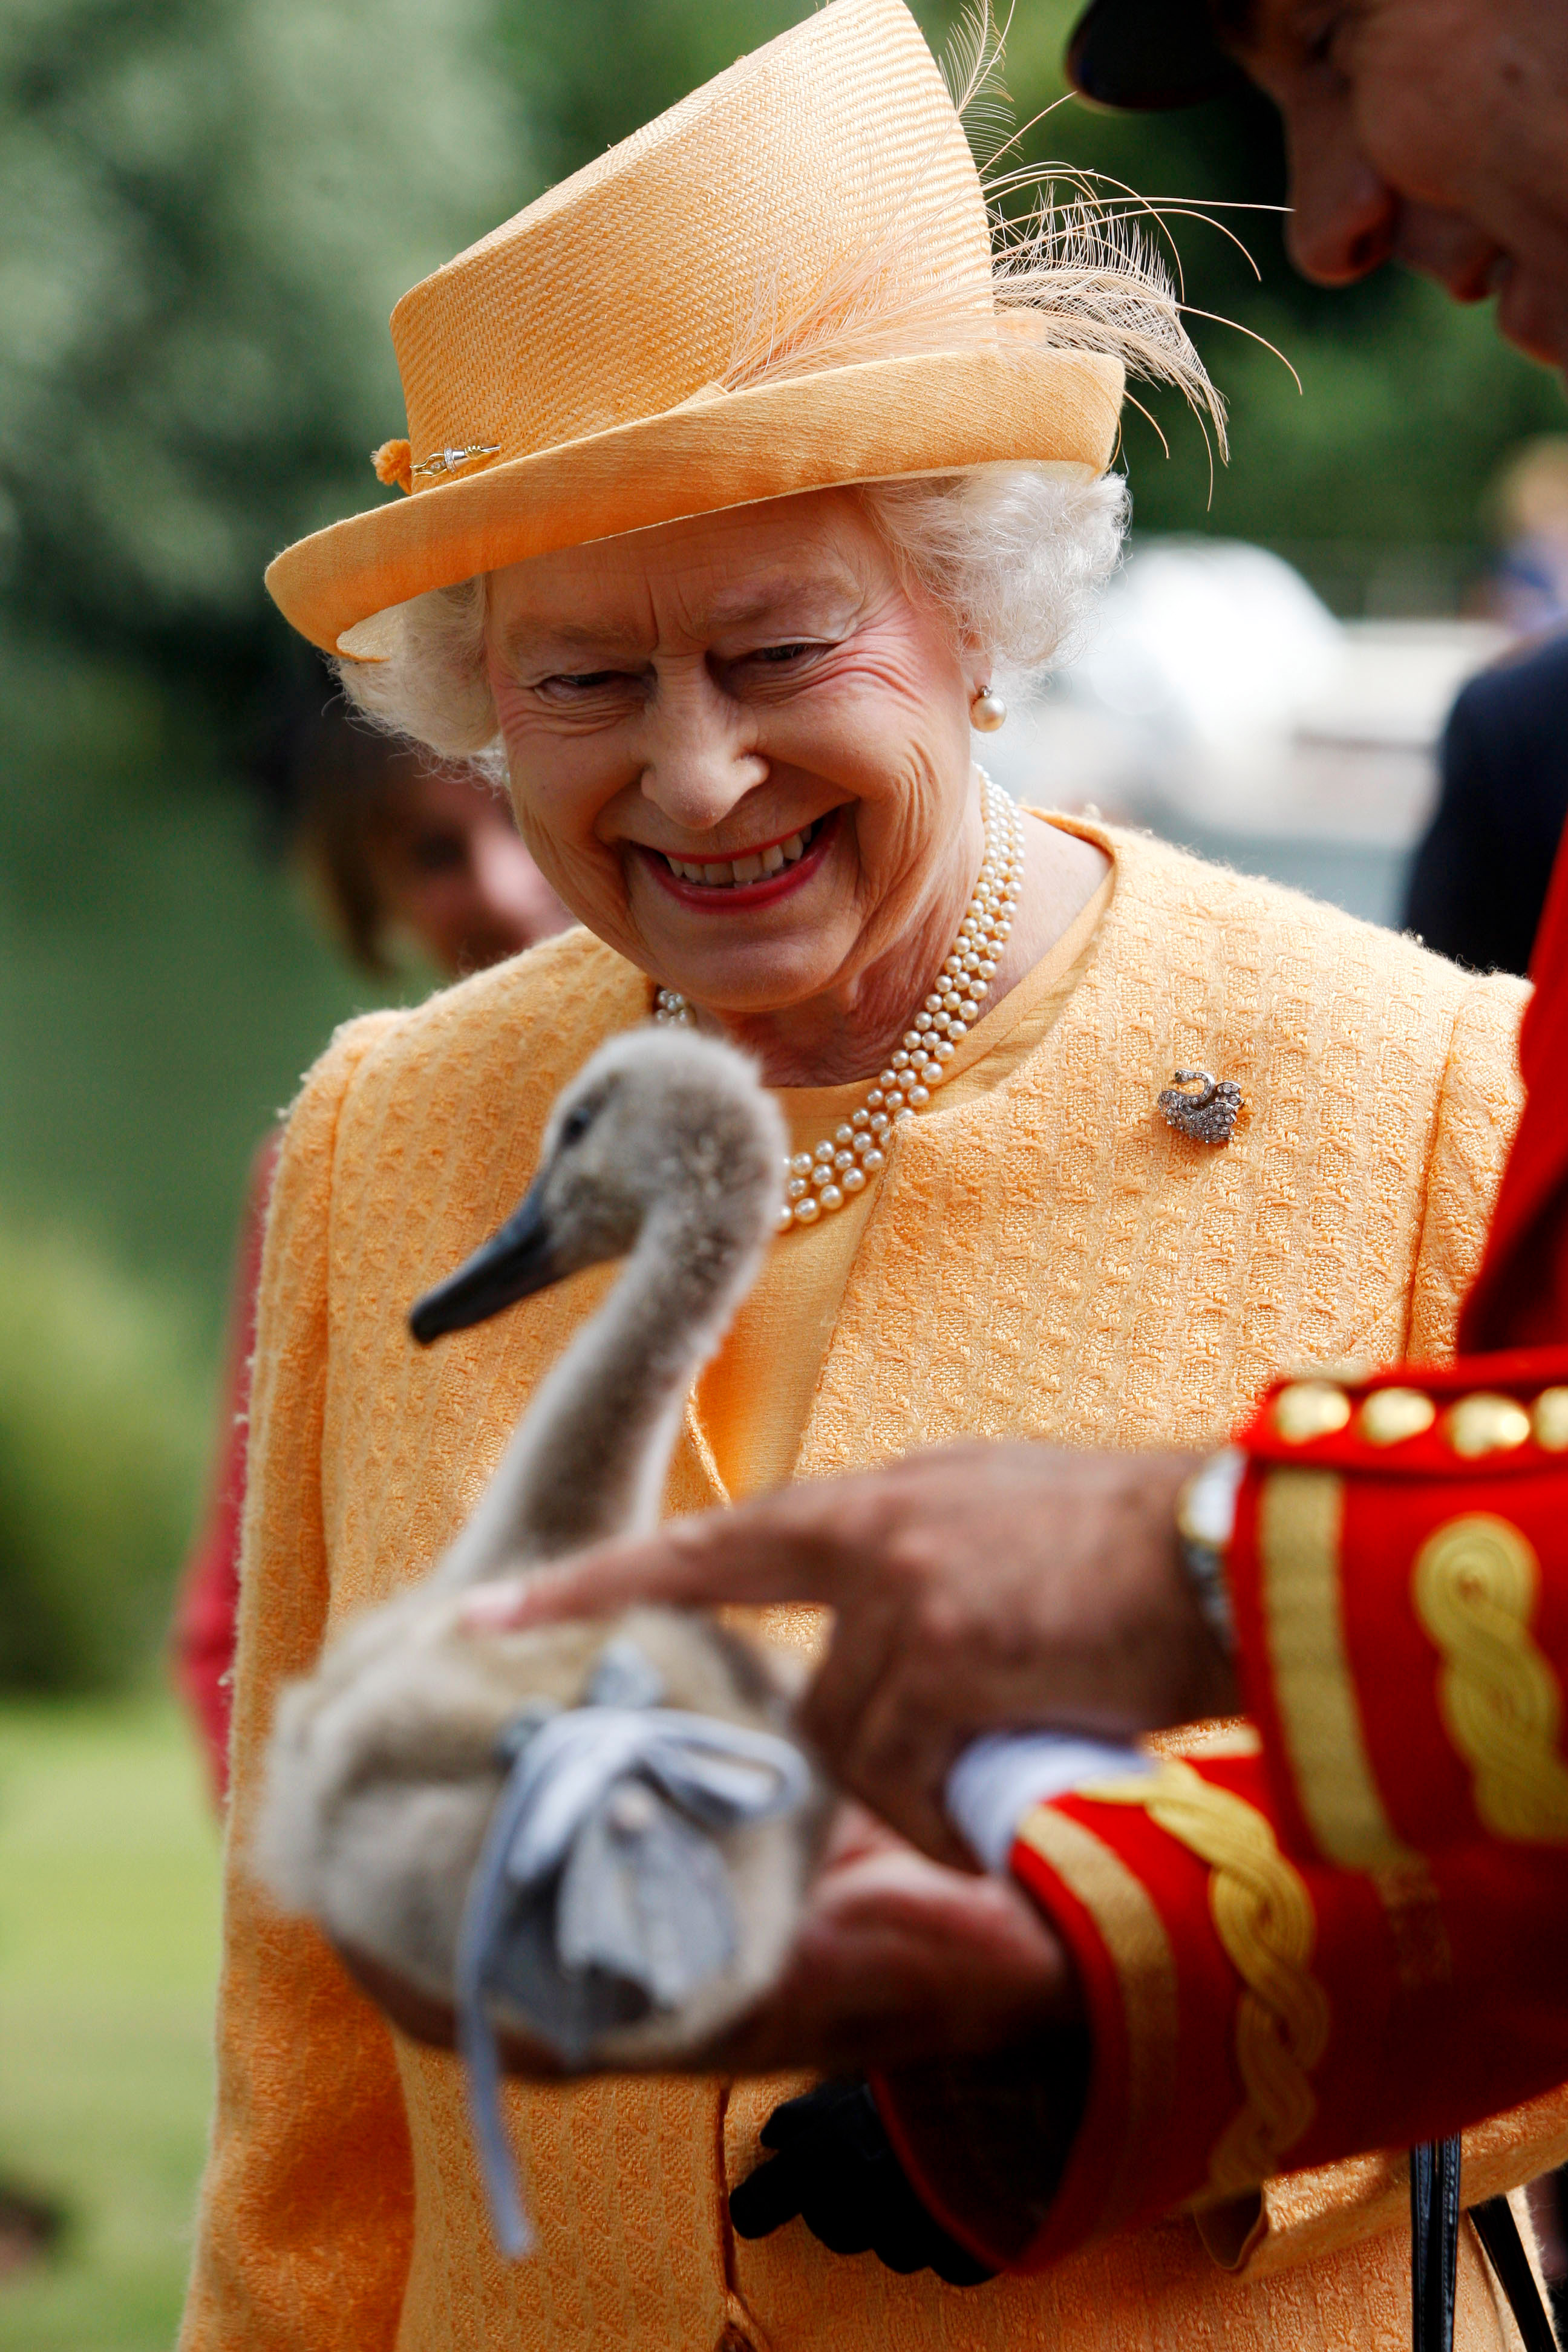 Today in weird royal news: someone is after Queen Elizabeth's swans